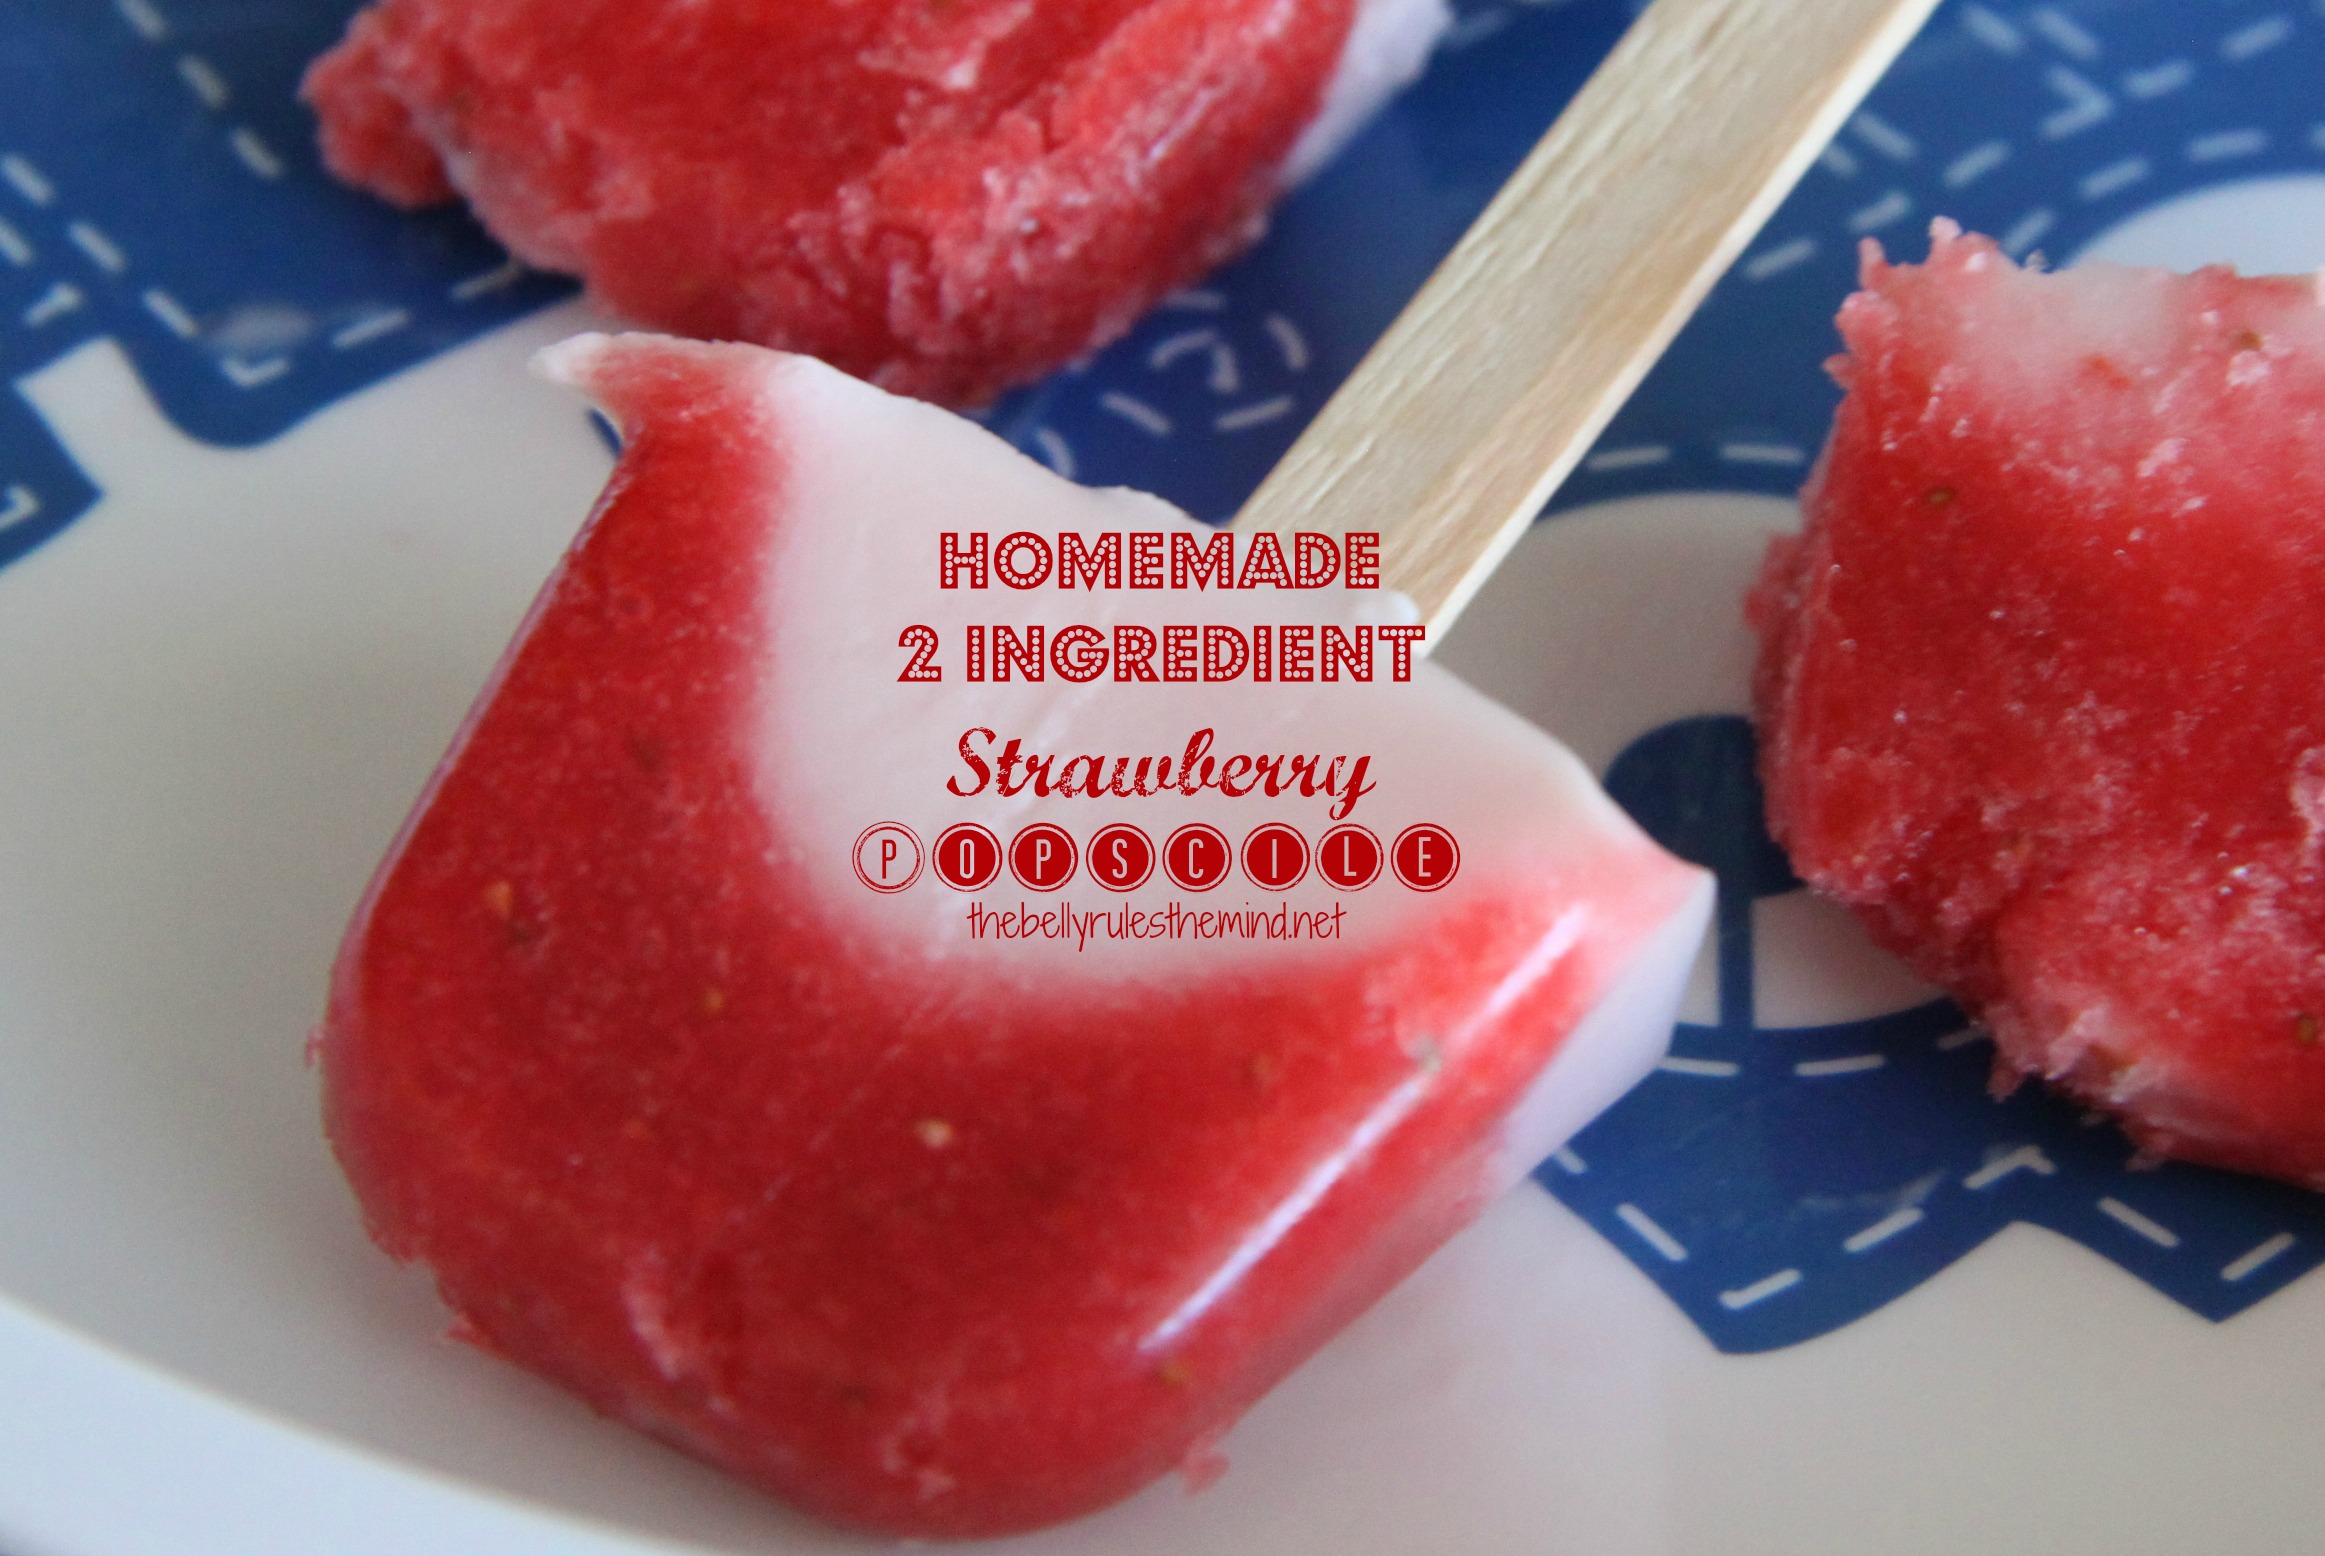 2 Ingredient Homemade Strawberry Popsicle